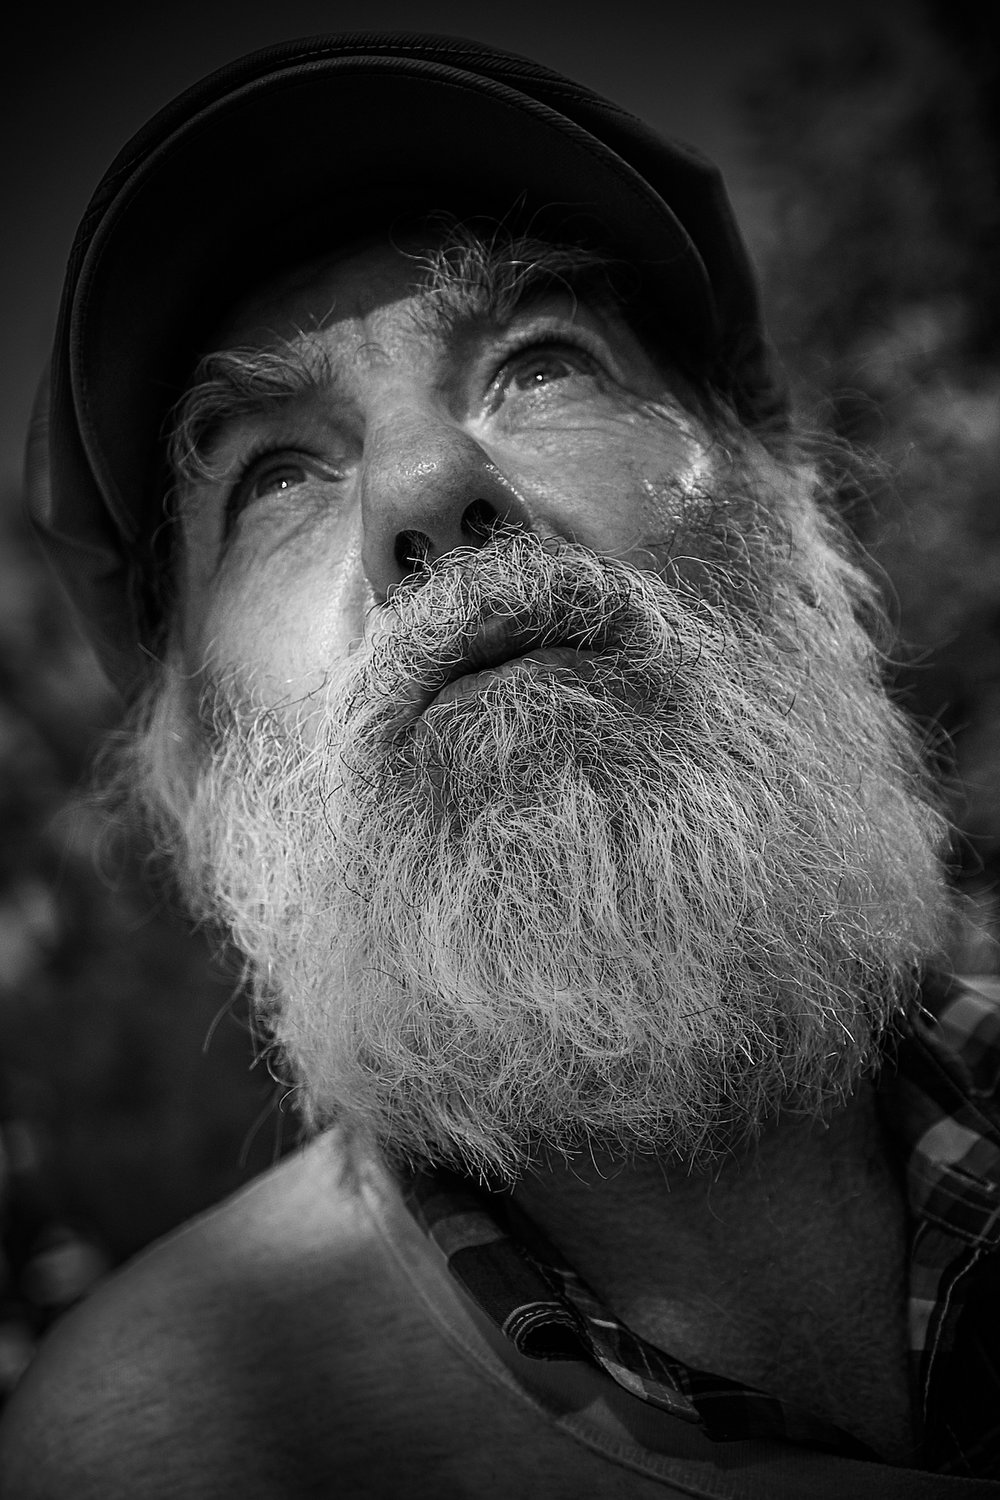 Sept, 2018 - My portrait of Edmund will be exhibited in the On-Line Annex of the Black Box Gallery in Portland, Oregon during the month of October and published in the full exhibition catalog.